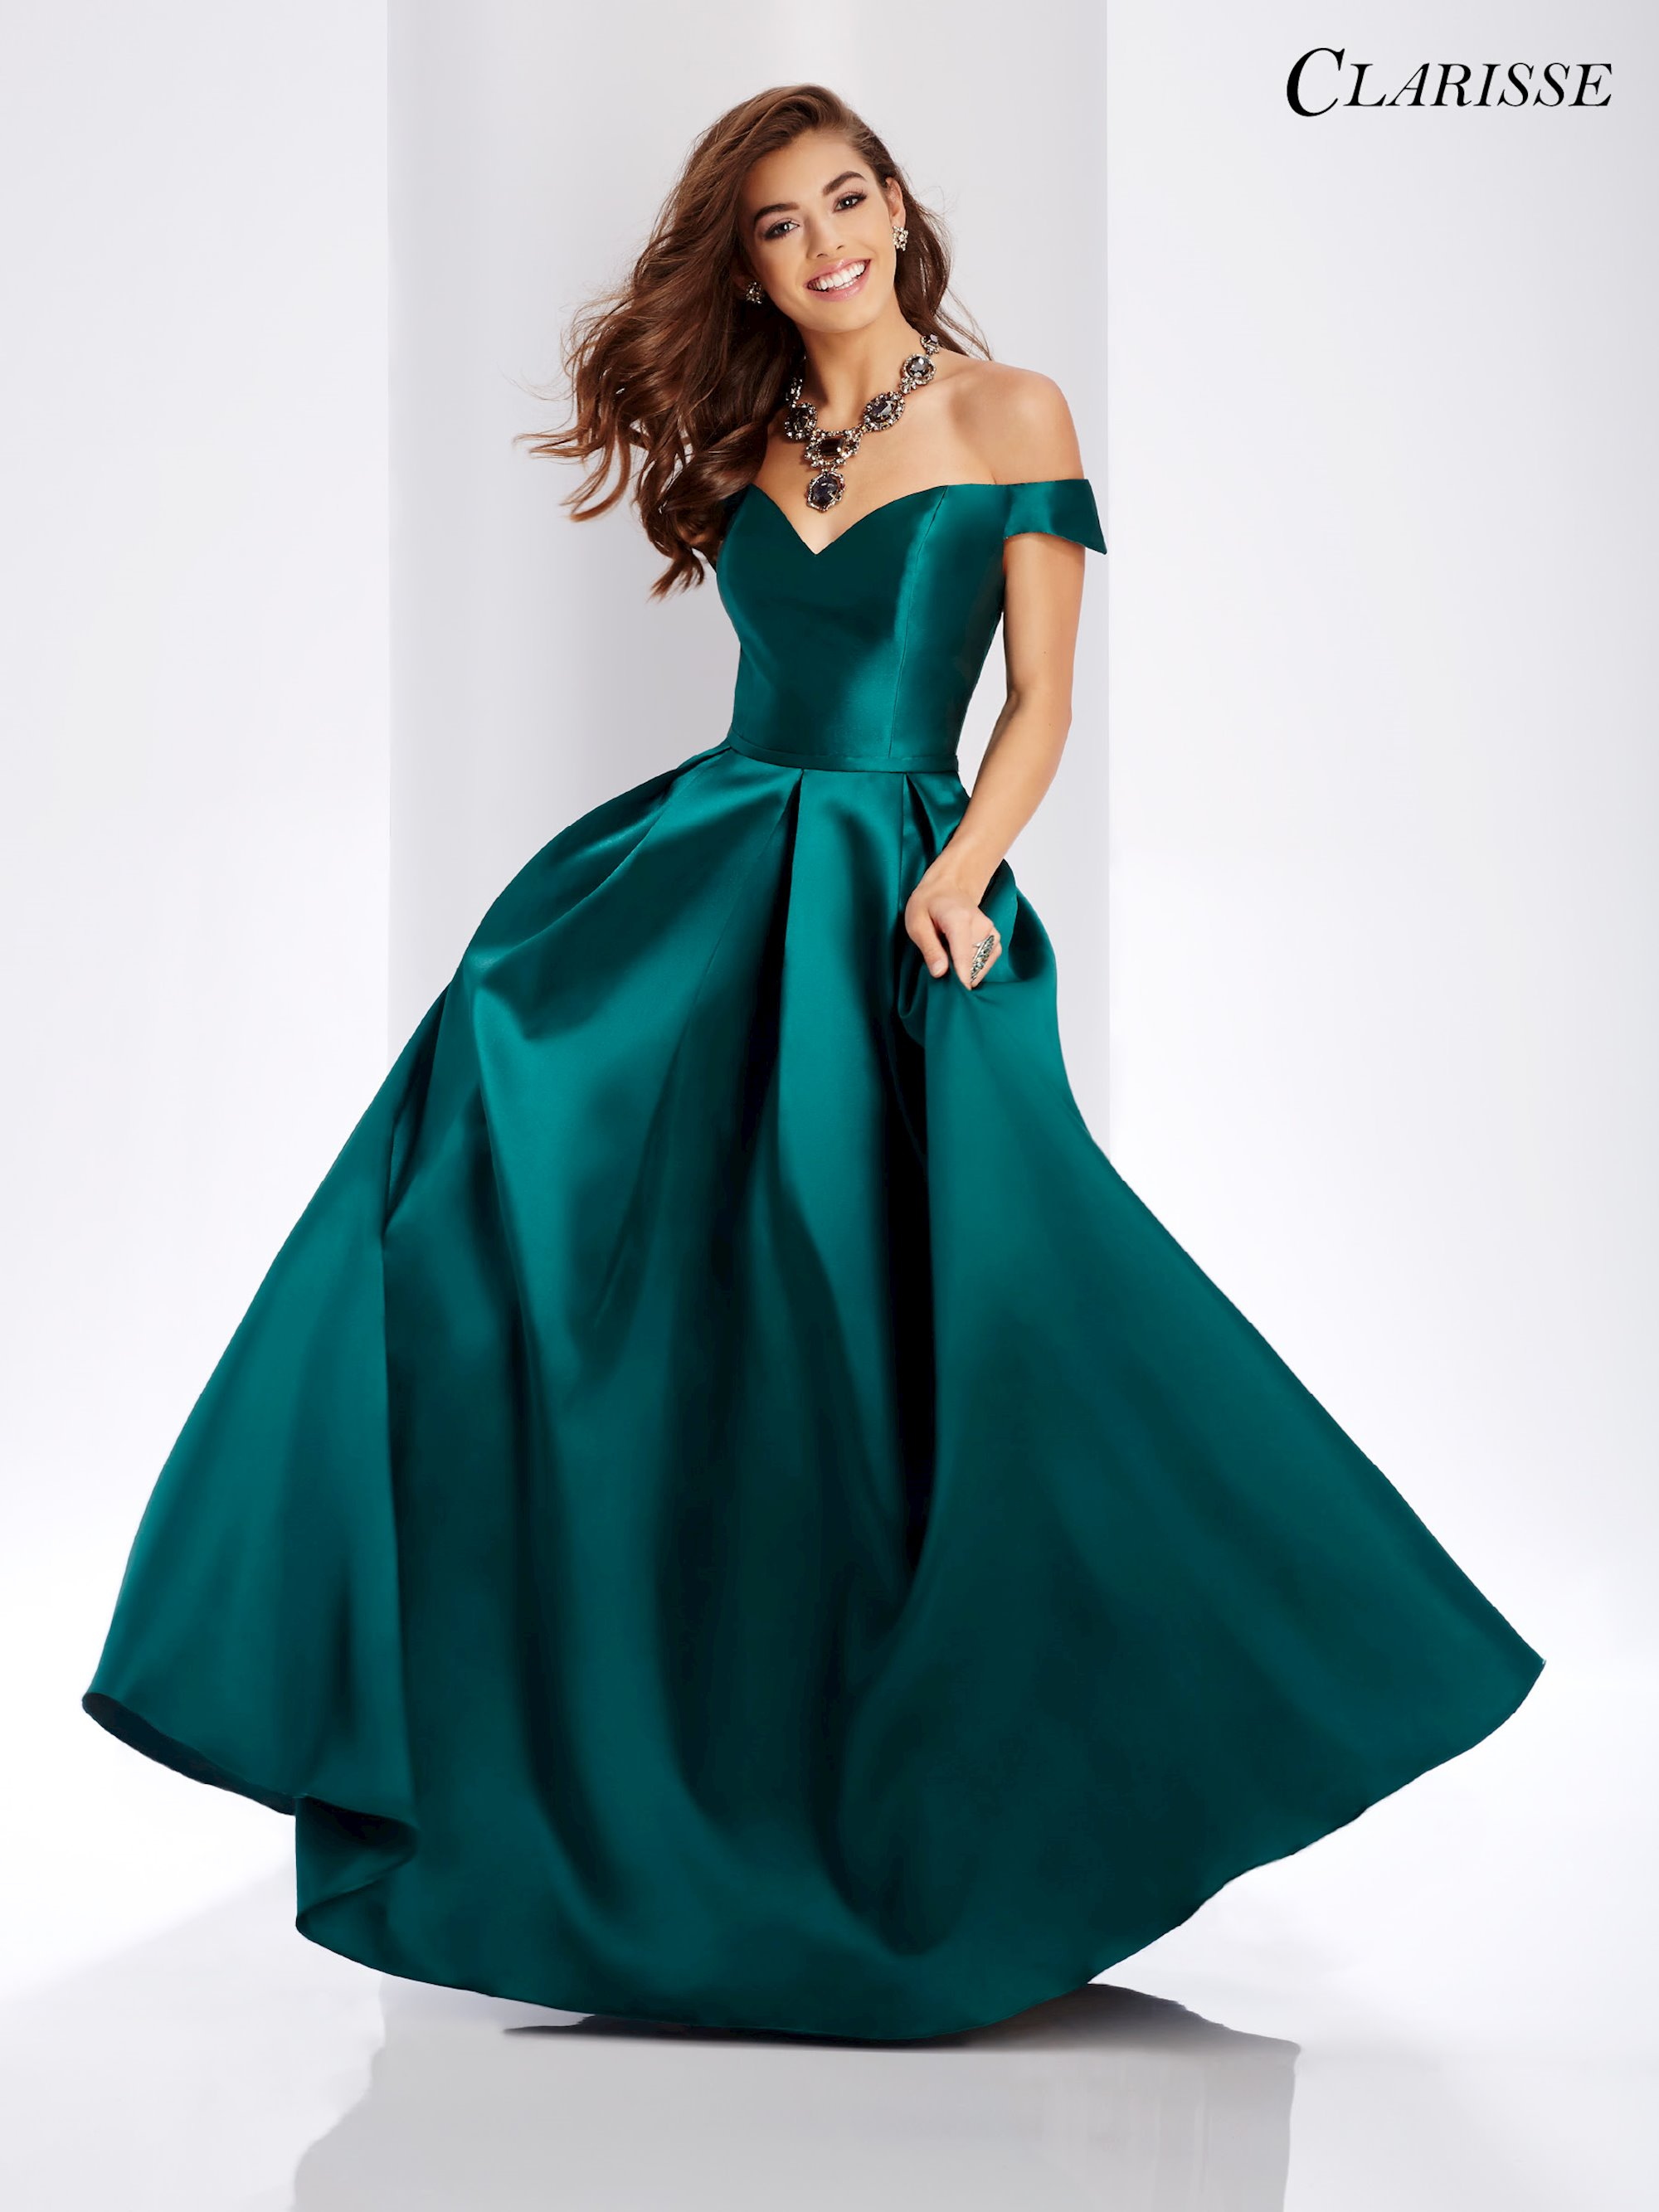 48ffb909e4a Clarisse Prom Dresses Off the Shoulder Classic Ball Gown. Double tap to zoom